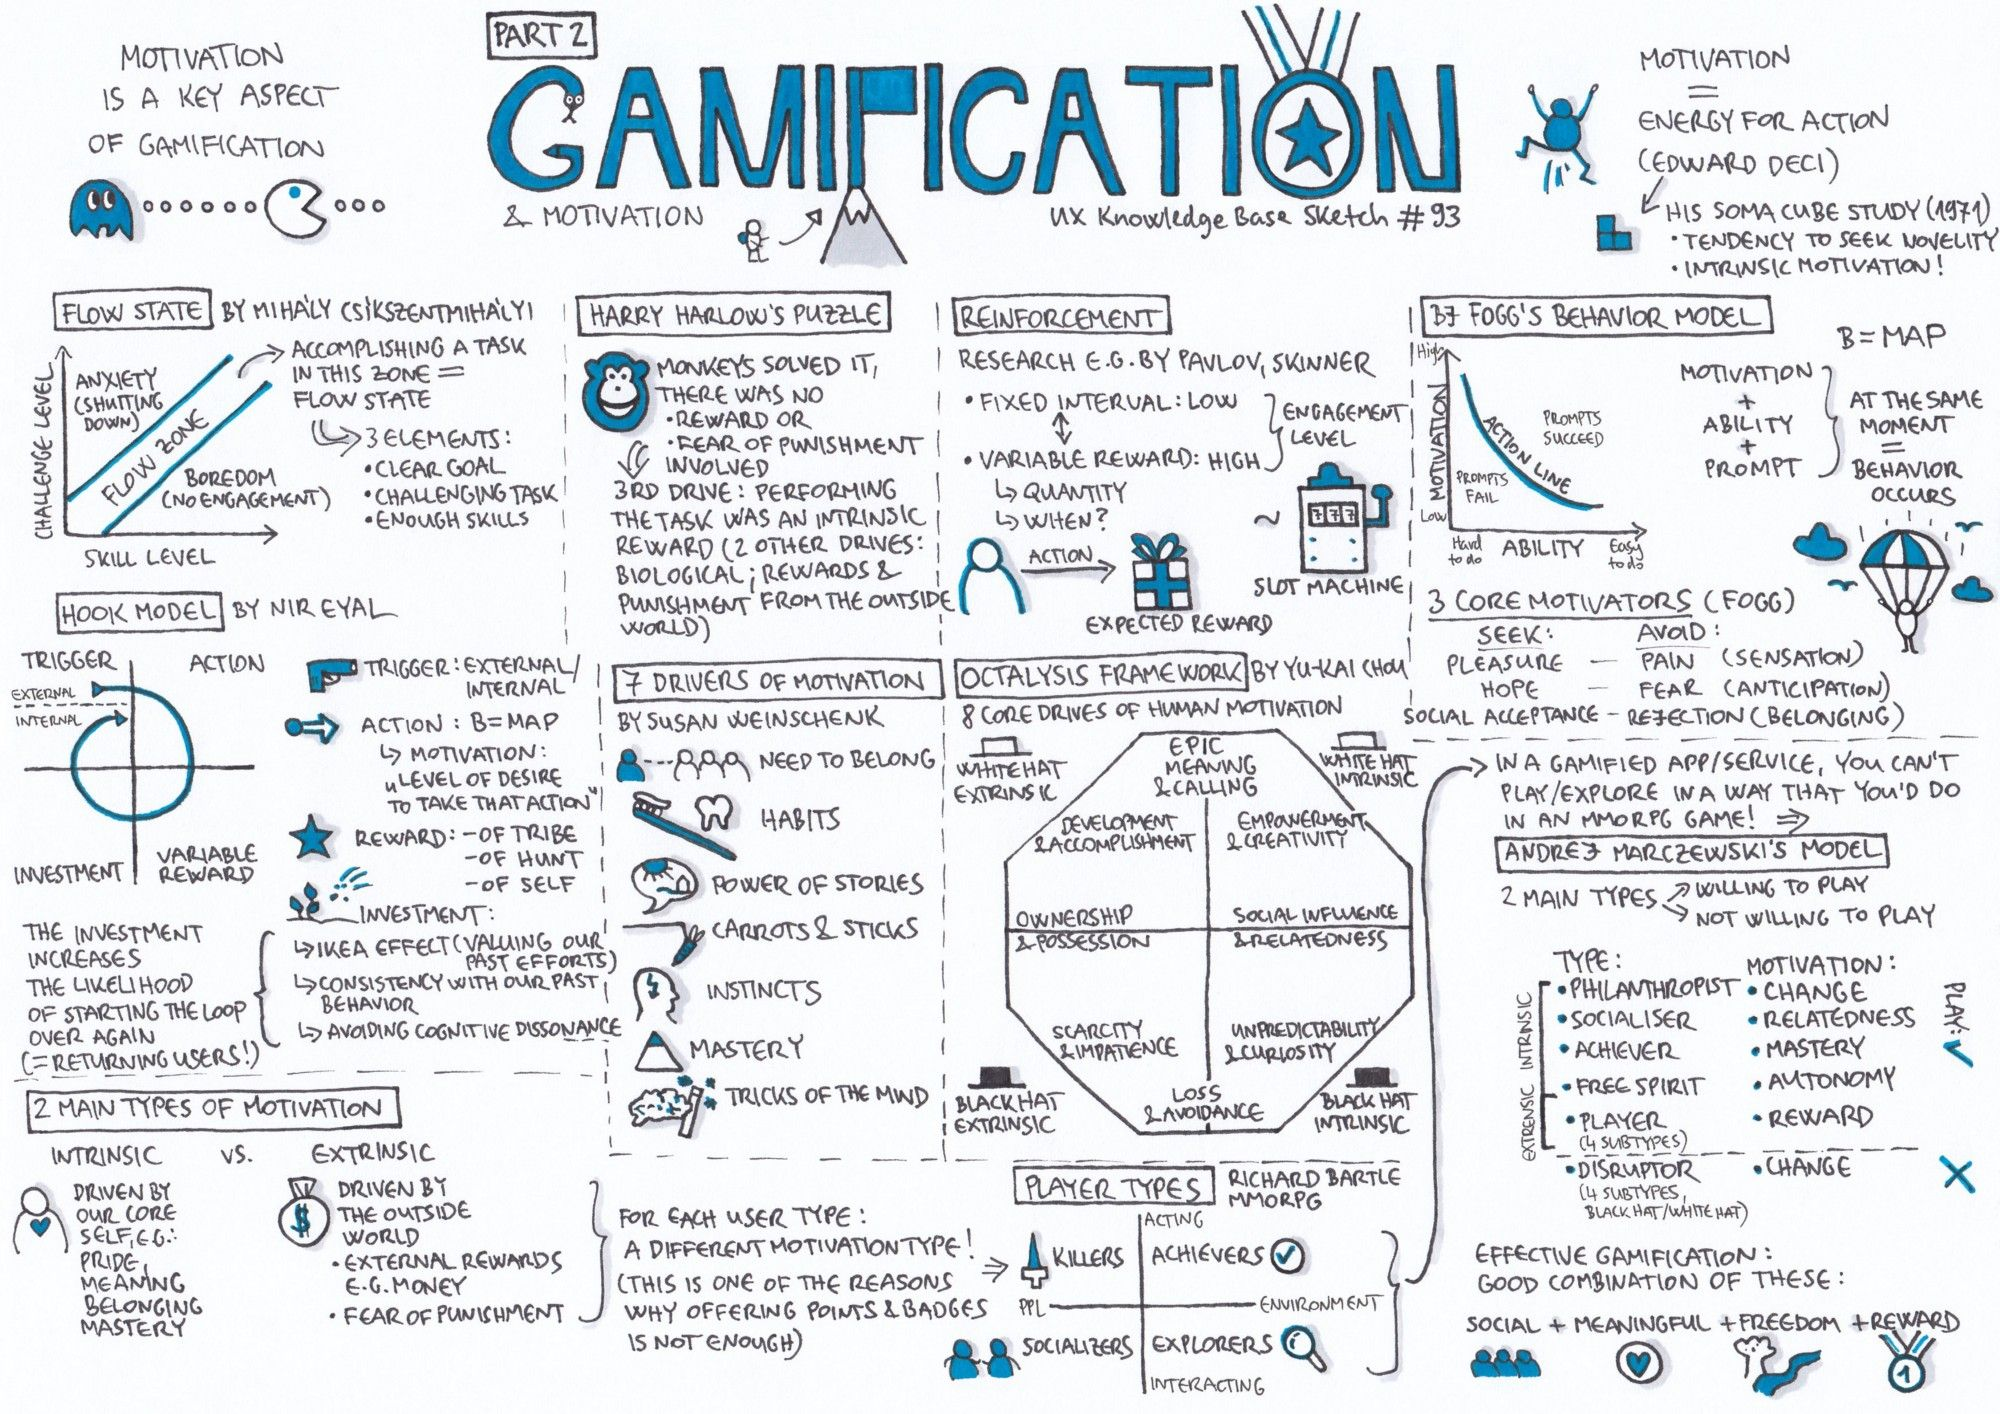 Gamification Part 2 Ux Knowledge Base Sketch Education Management A Decision Theoretic Approach For Interface Agent Development Phd Dissertation